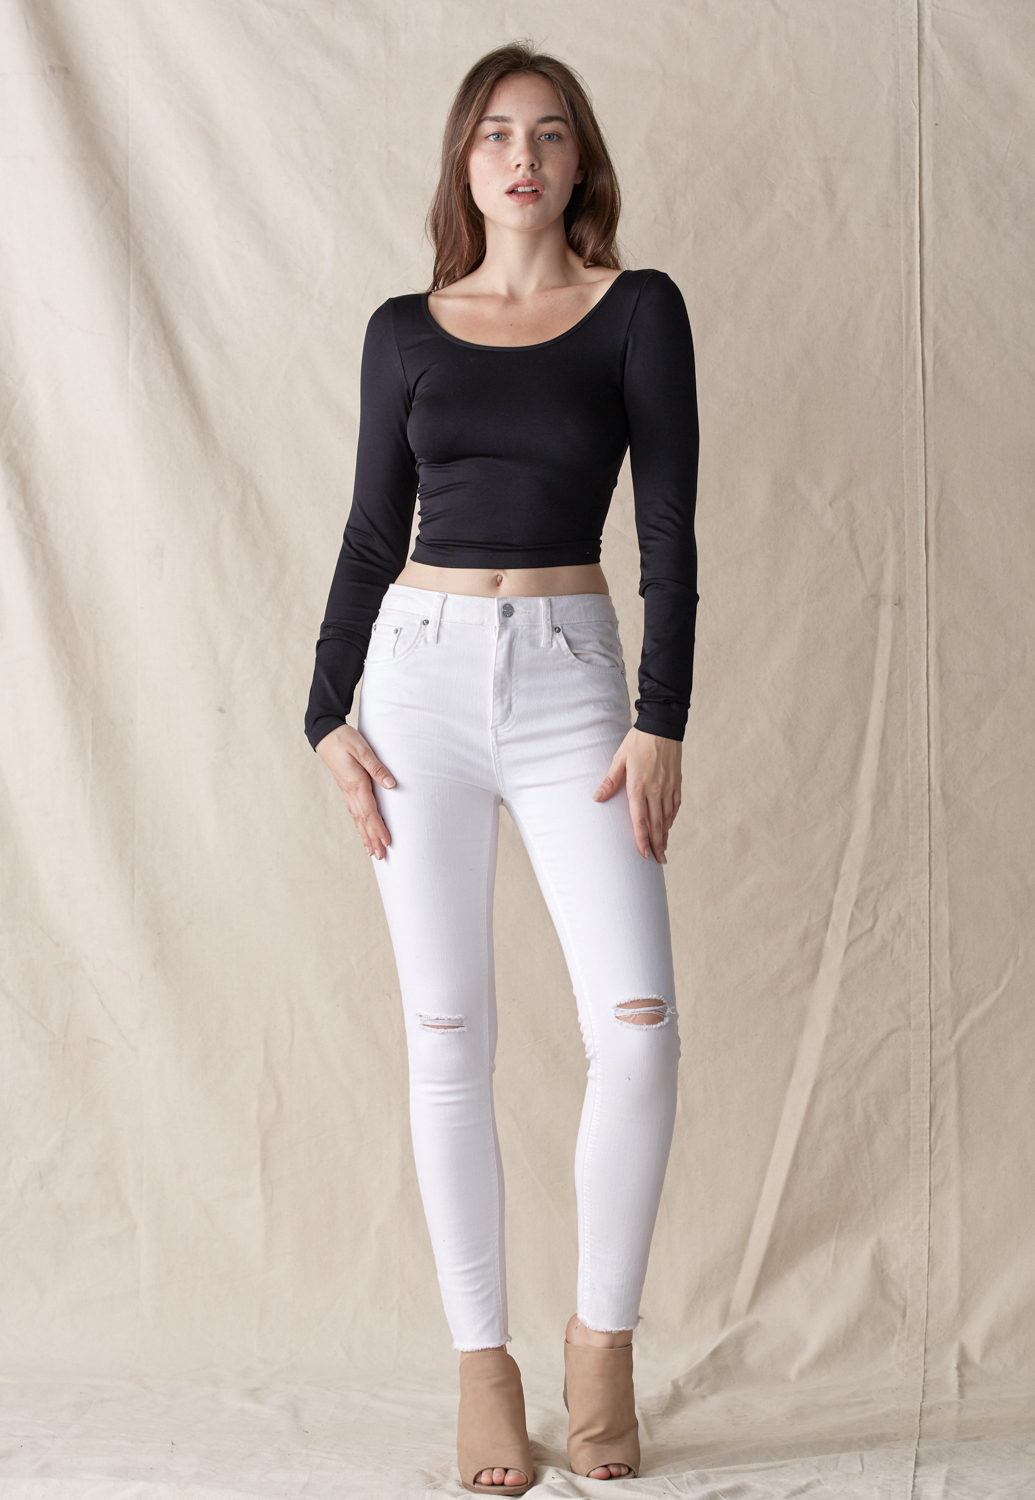 String Back Crop Top